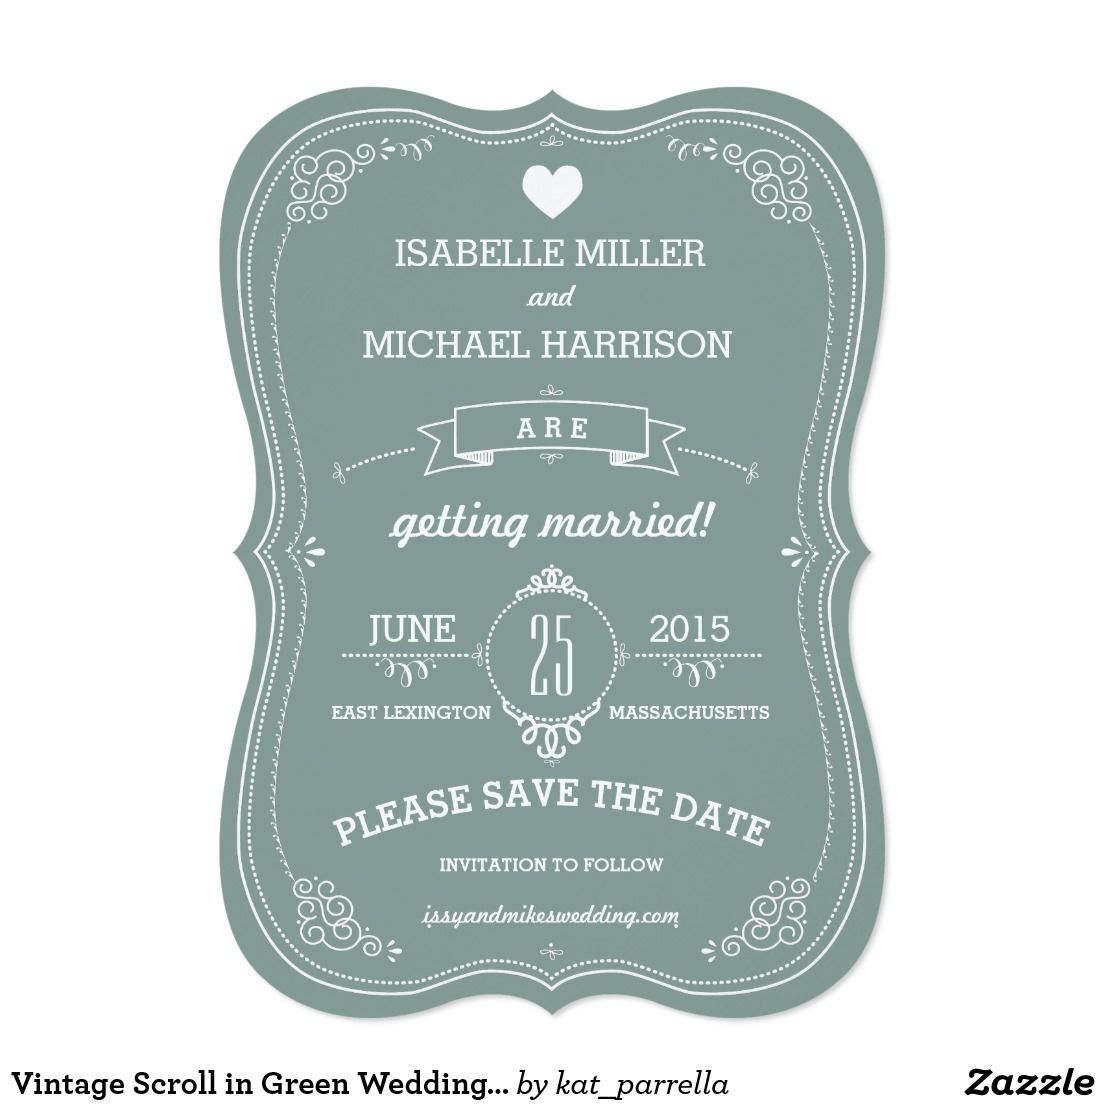 Vintage Scroll in Green Wedding Save the Date | Zazzle.com#date #green #save #scroll #vintage #wedding #zazzlecom